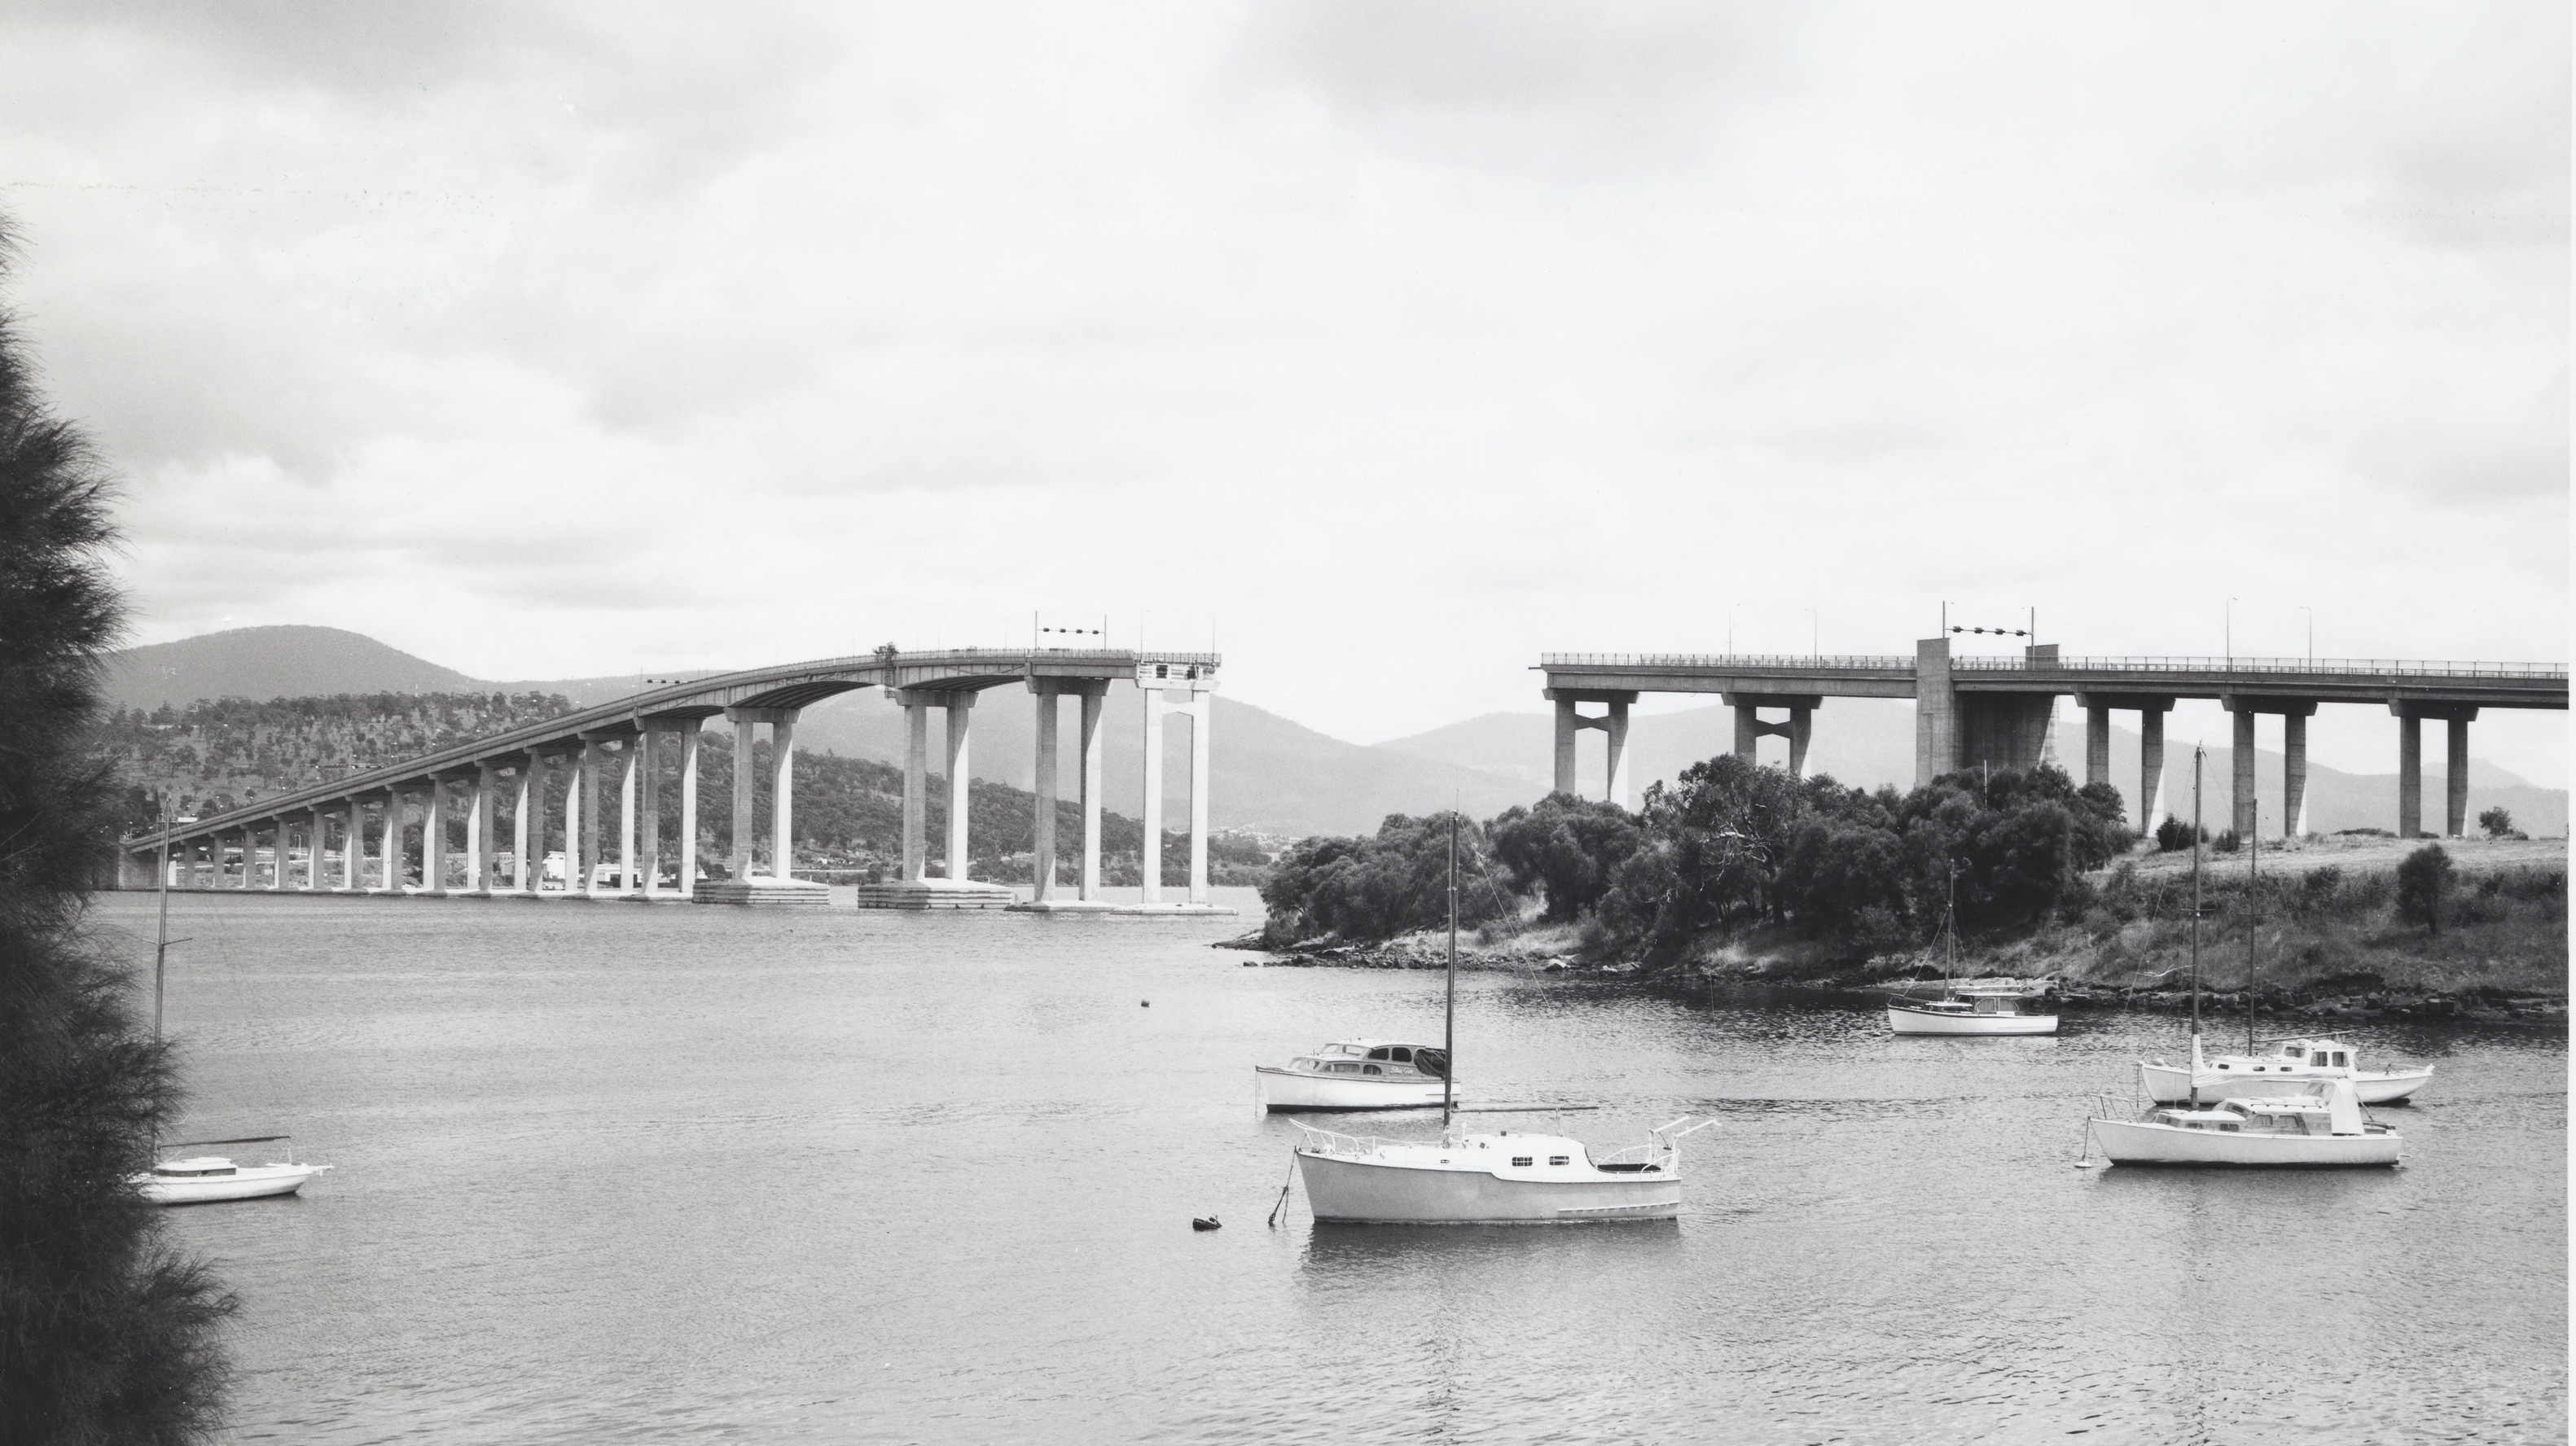 View_of_the_Tasman_Bridge_from_Kalatie_Road_Montague_Bay_looking_toward_the_Powder_Jetty_over_Cuthbertson's_Boat_shed_(1975)_(16200189861)